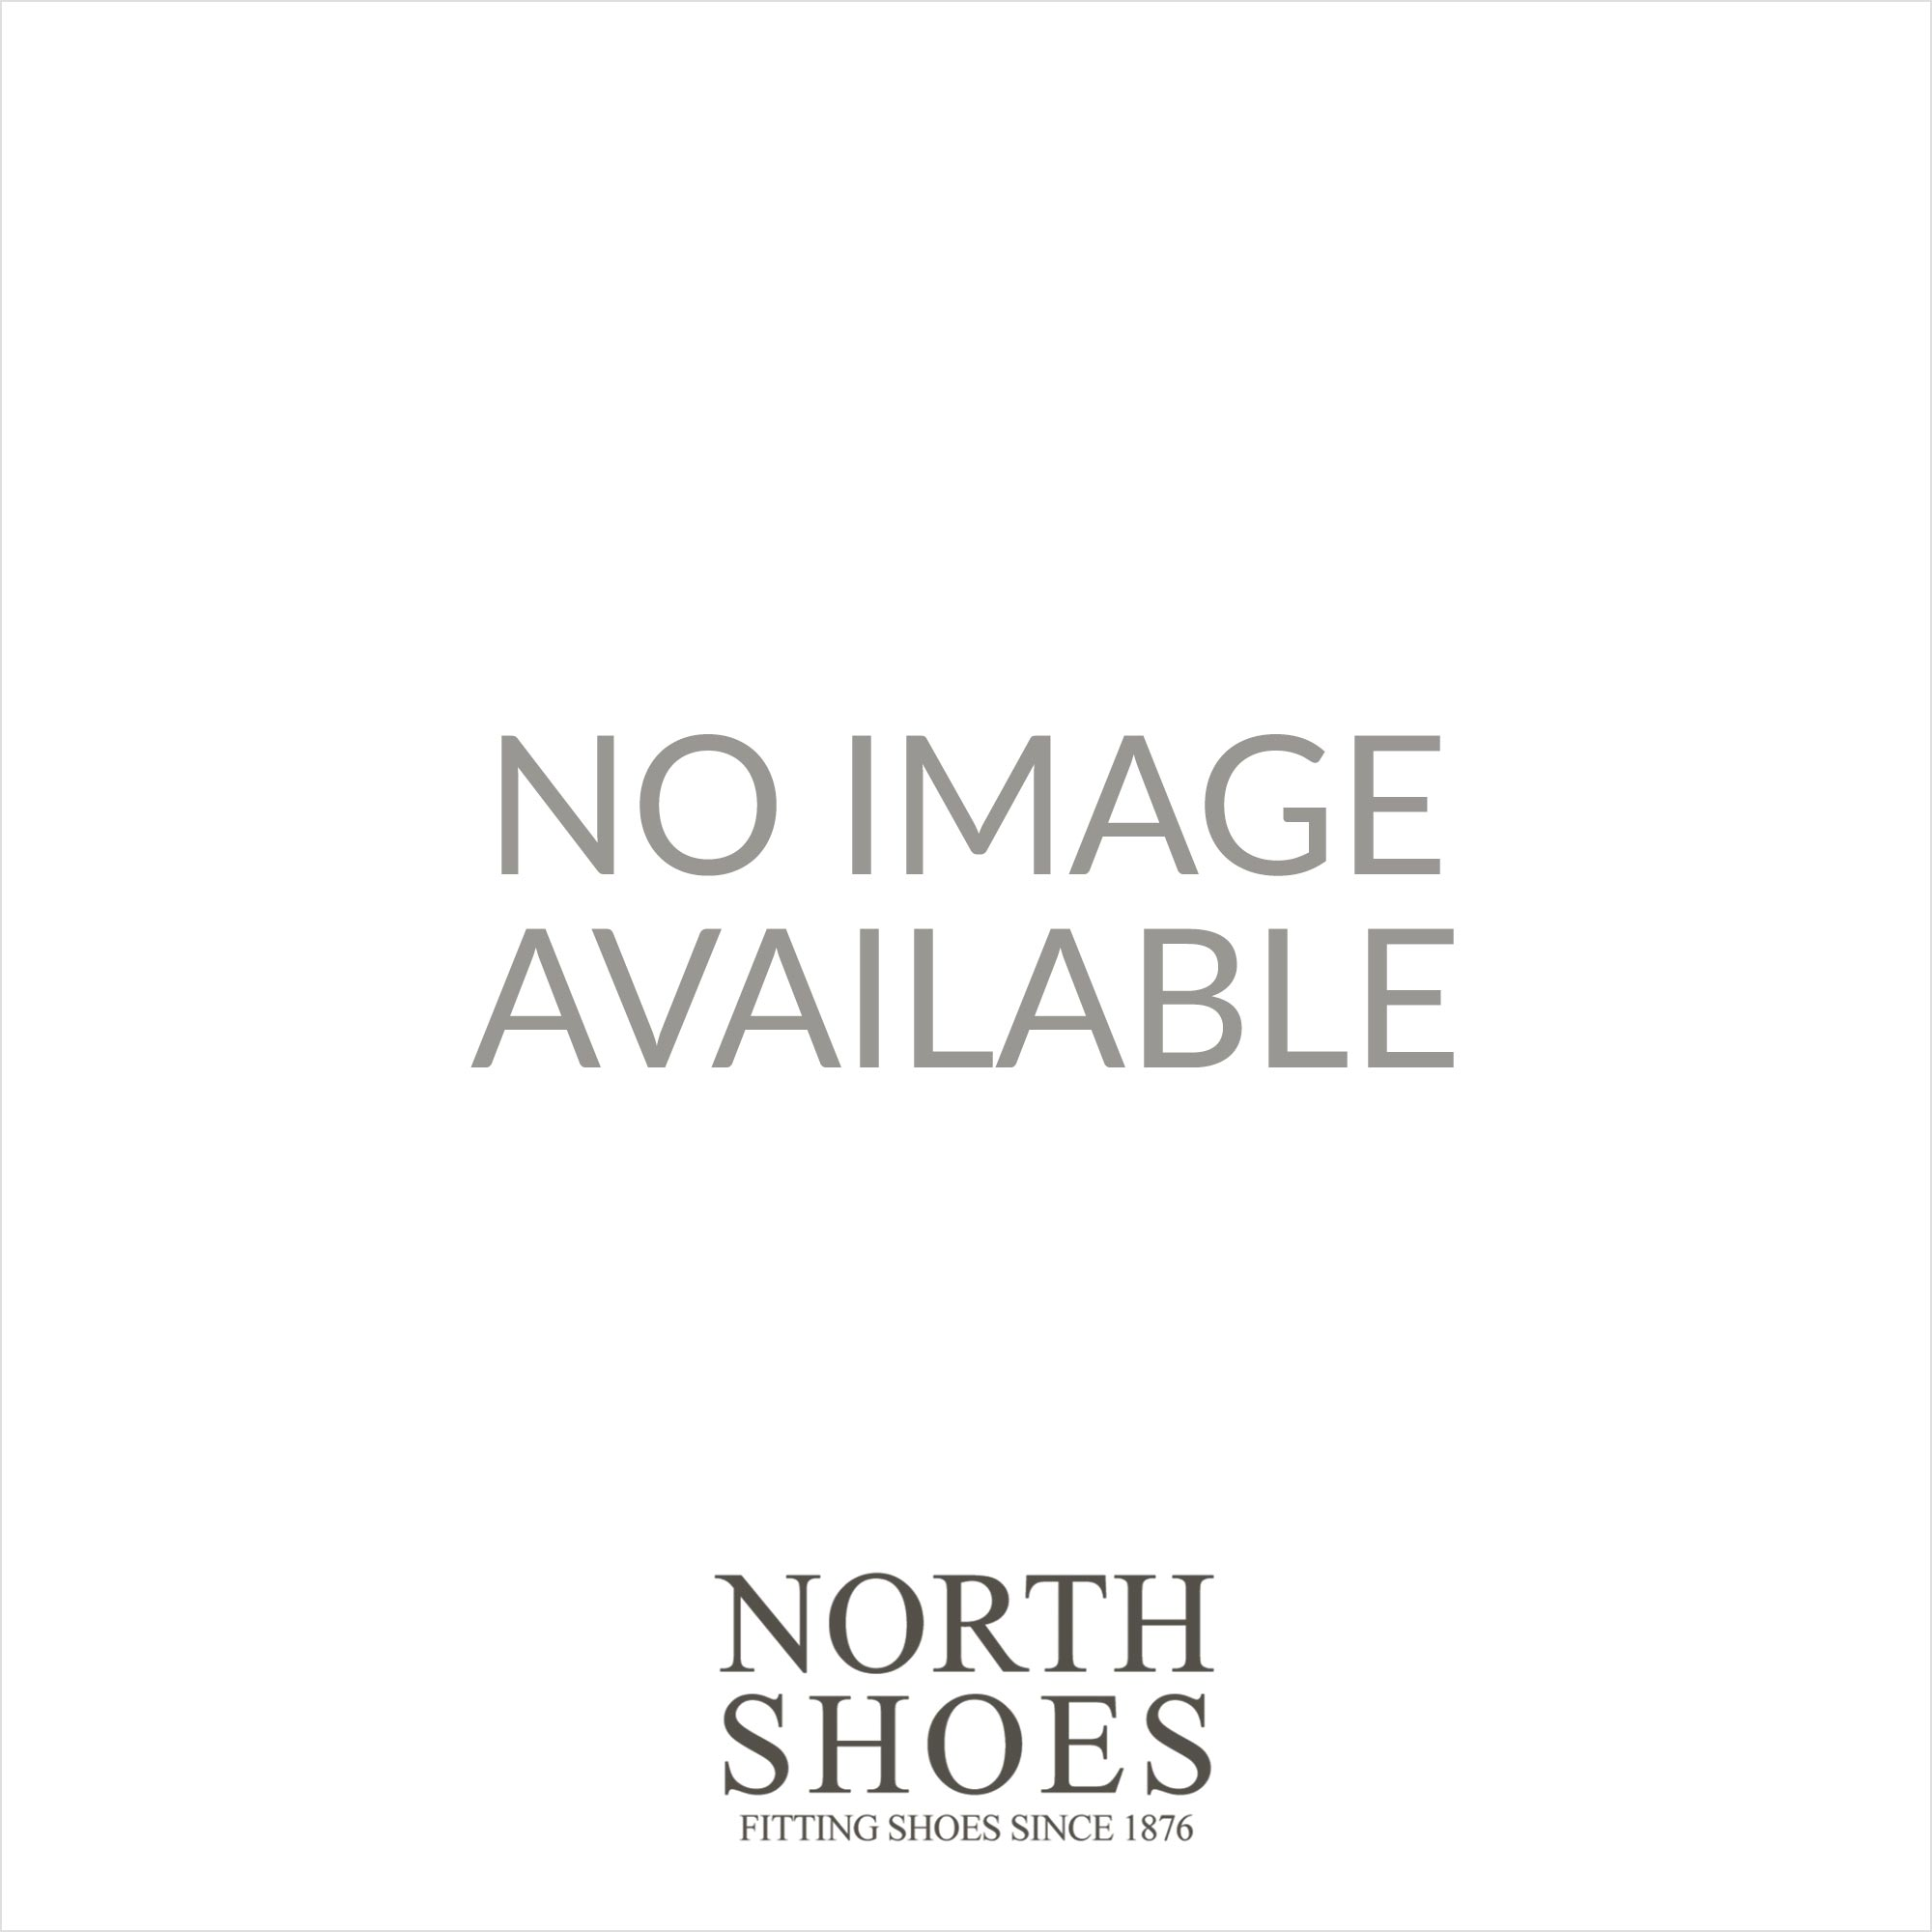 49ce558df930 Converse Chuck Taylor Ox M9696 Red Canvas Unisex Lace Up Shoe - Converse  from North Shoes UK